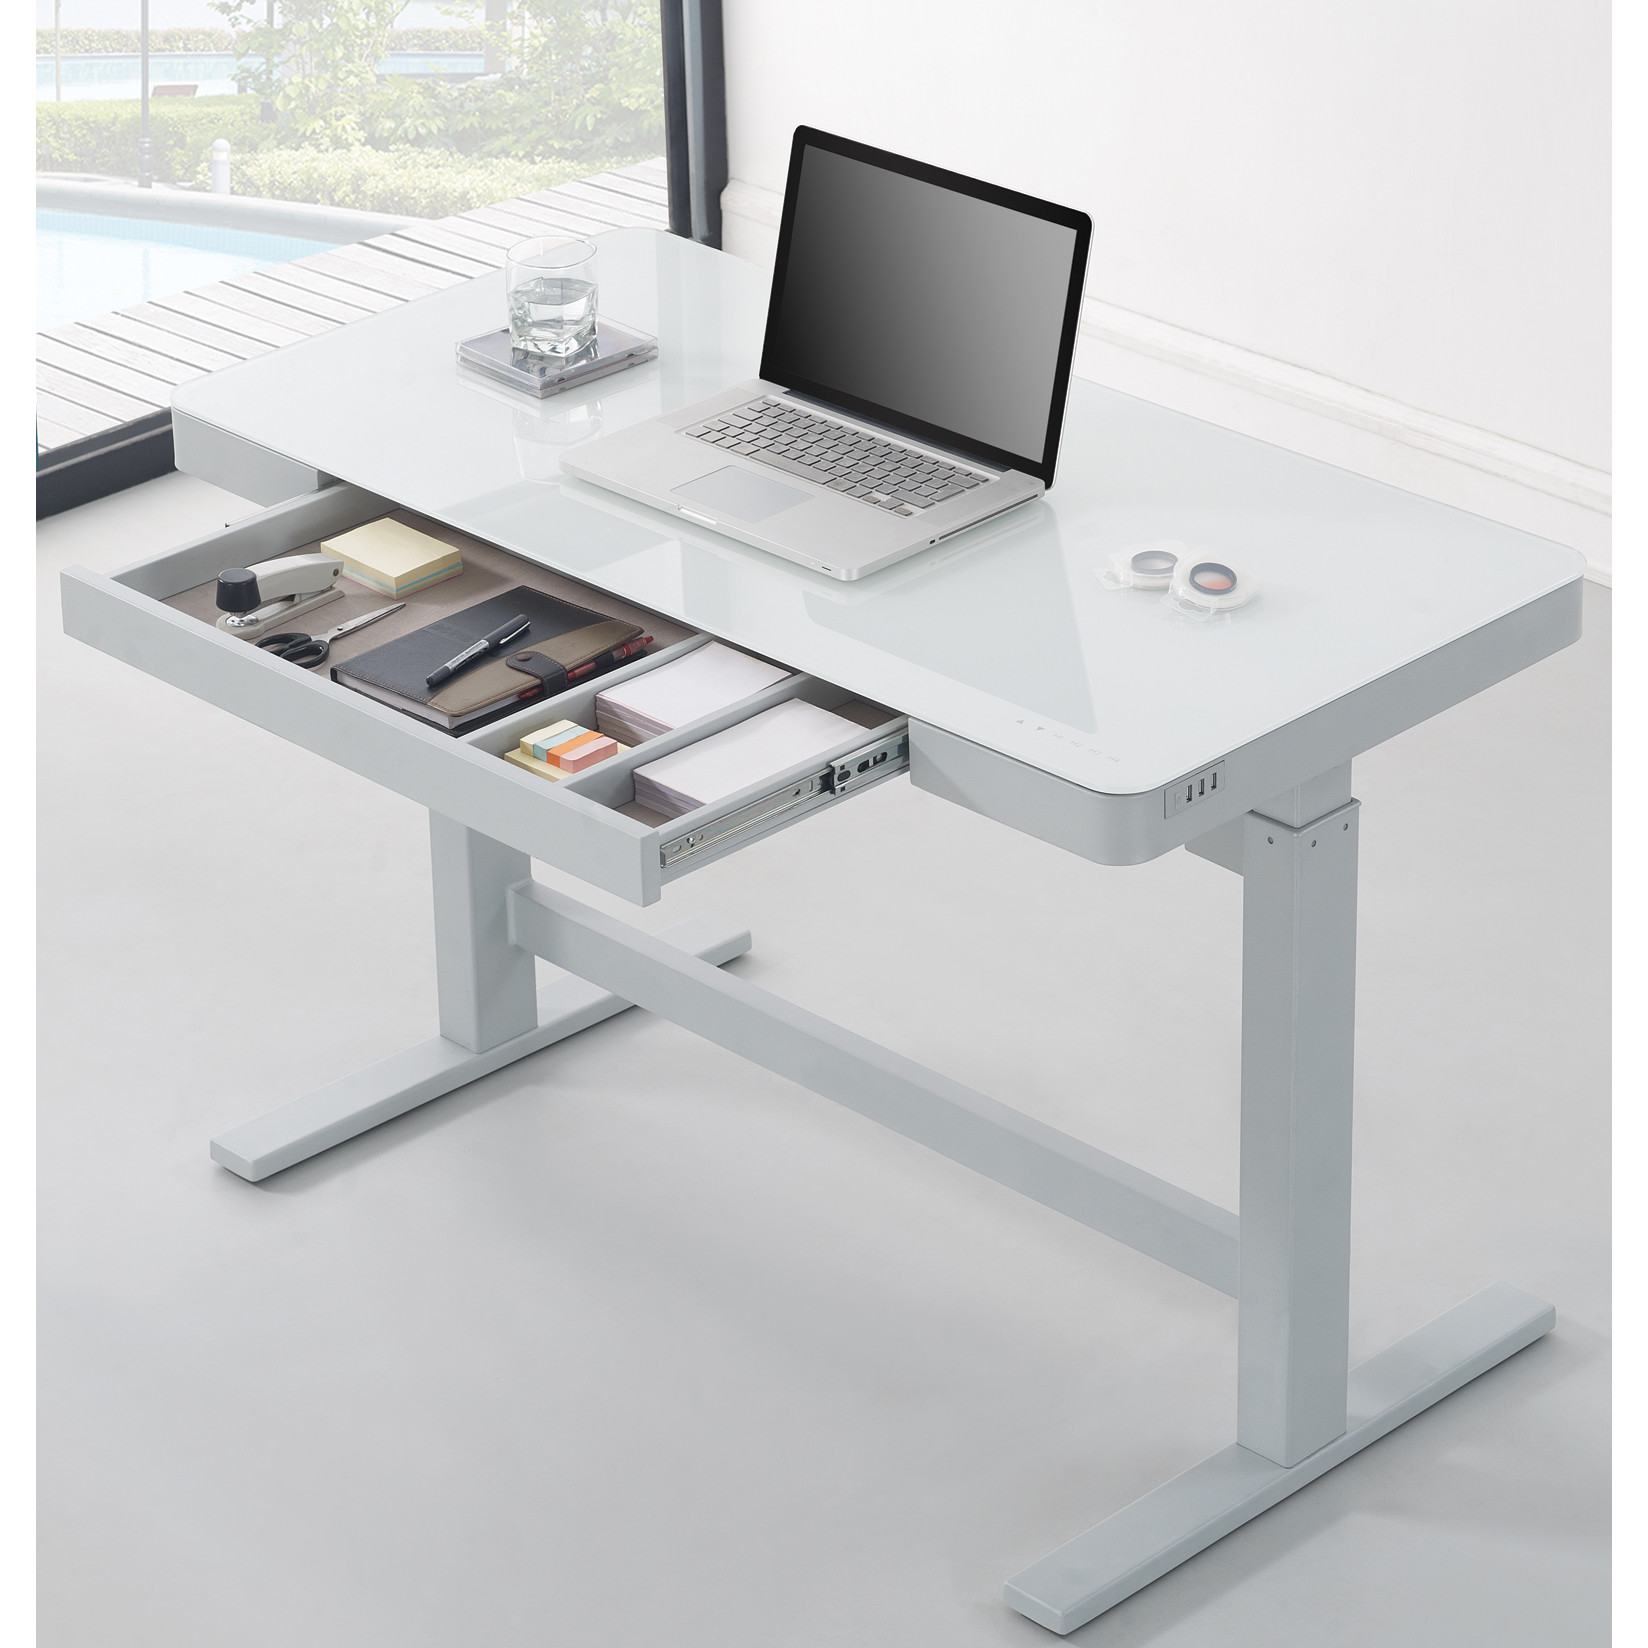 Unique Wildon Home u0026reg; Adjustable Standing Desk adjustable standing desk